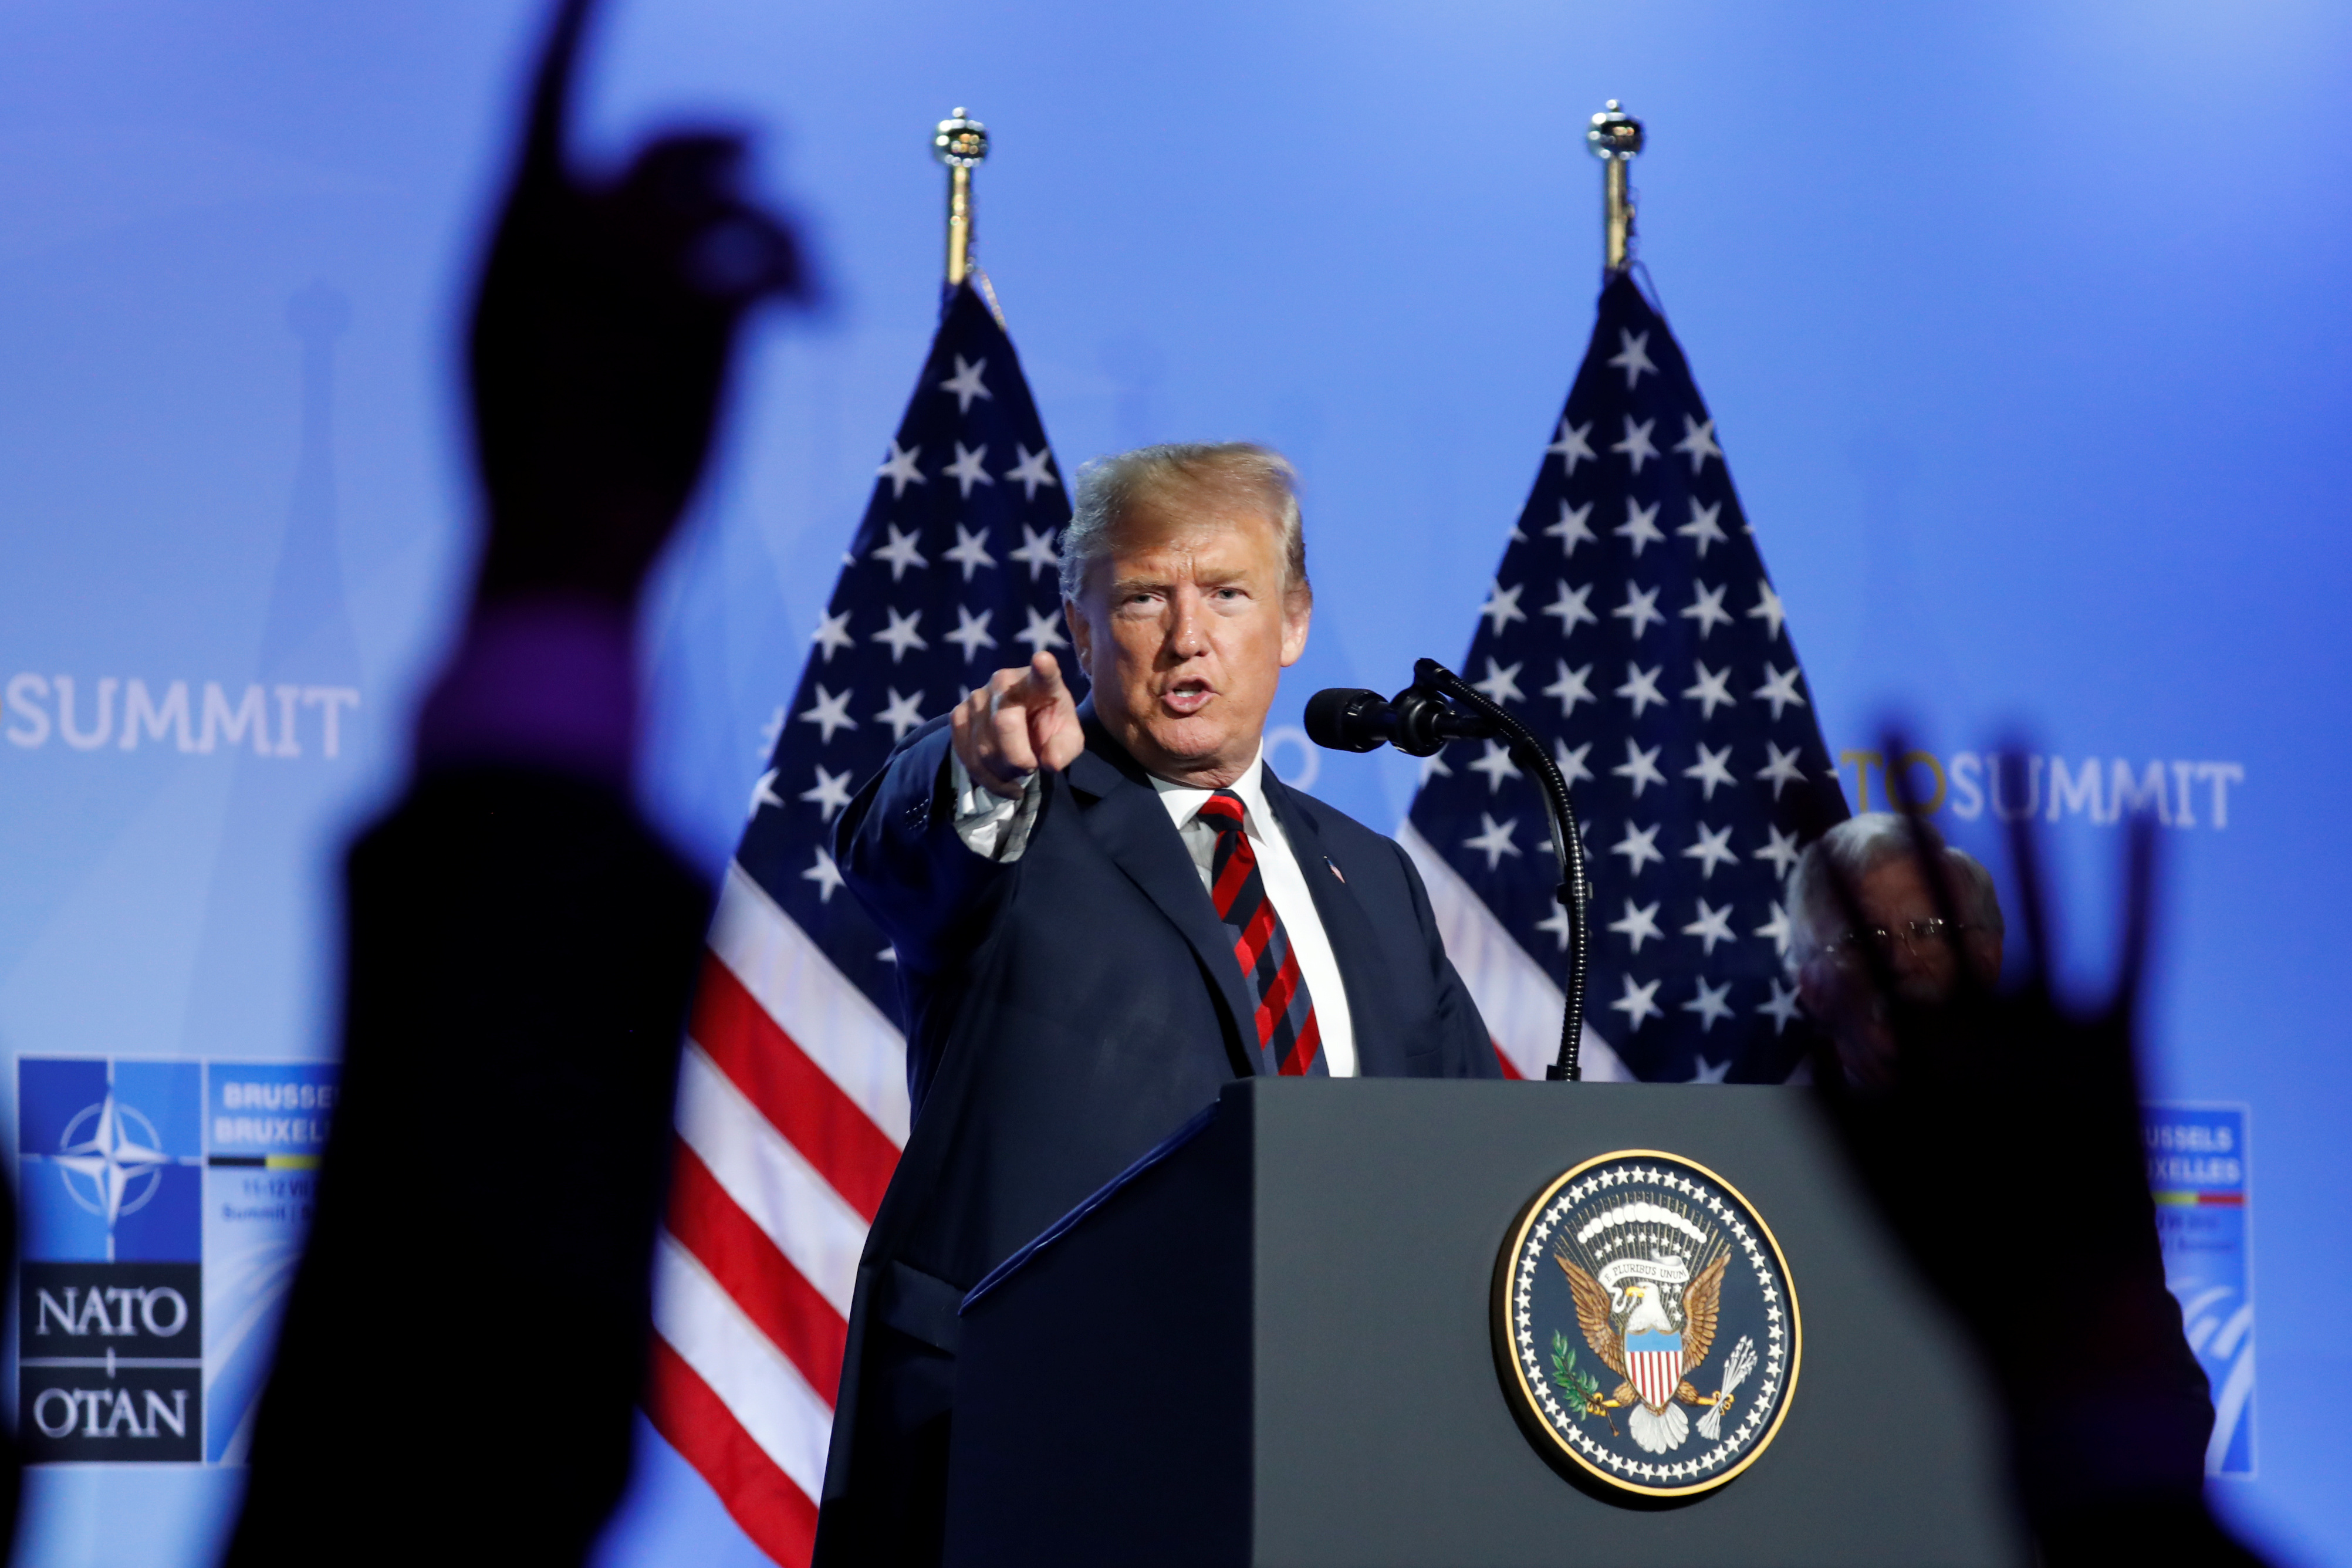 U.S. President Donald Trump takes questions from the media during a news conference after participating in the NATO Summit in Brussels, Belgium July 12, 2018. REUTERS/Kevin Lamarque - RC1988096060